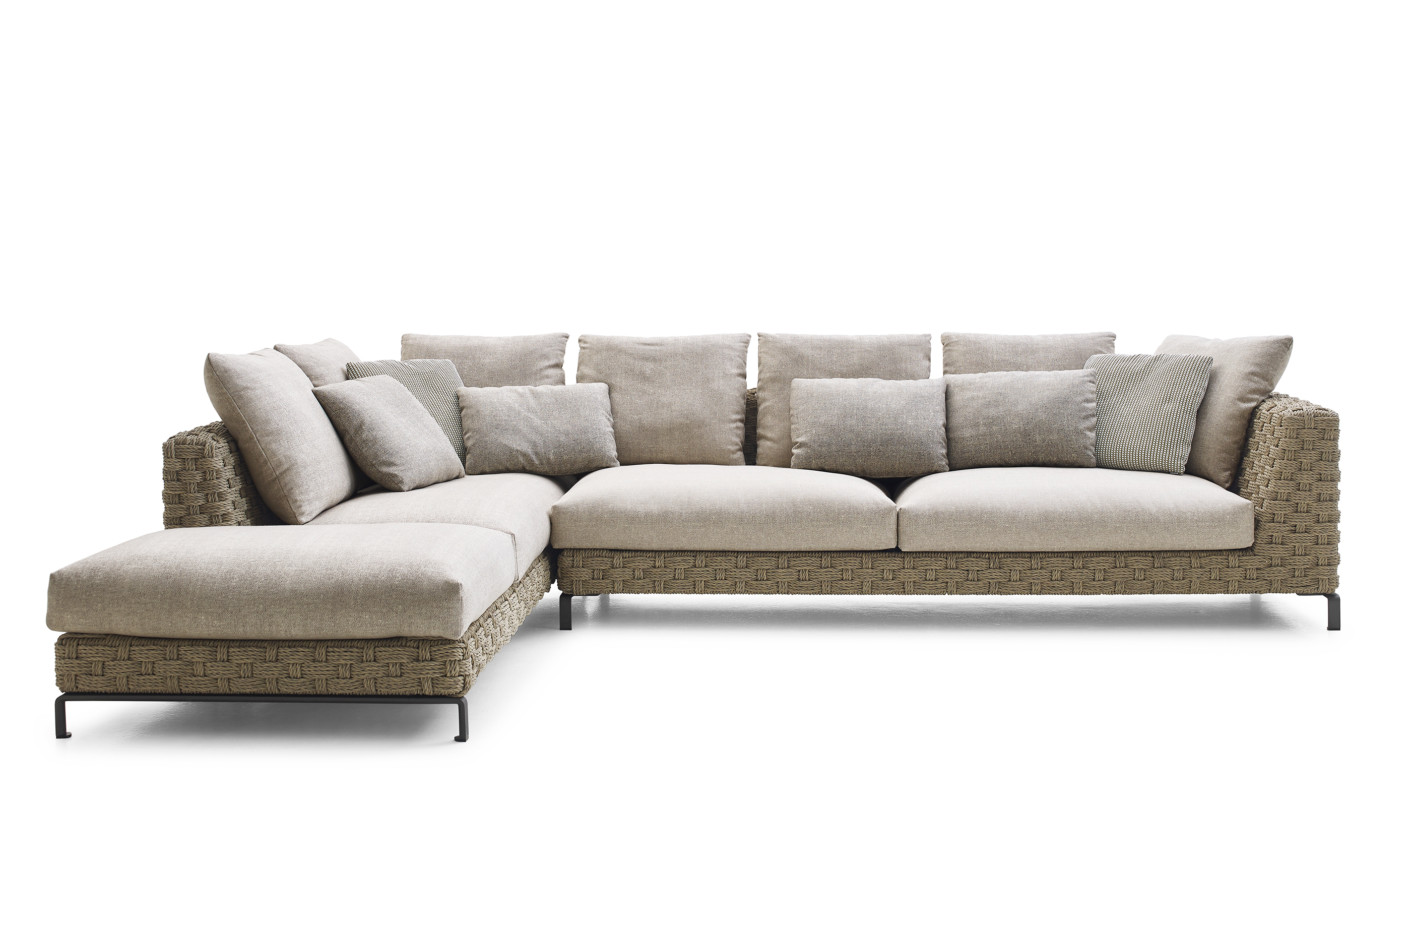 Outdoor Ecksofa Ray Outdoor Natural Ecksofa Von B Andb Italia Stylepark